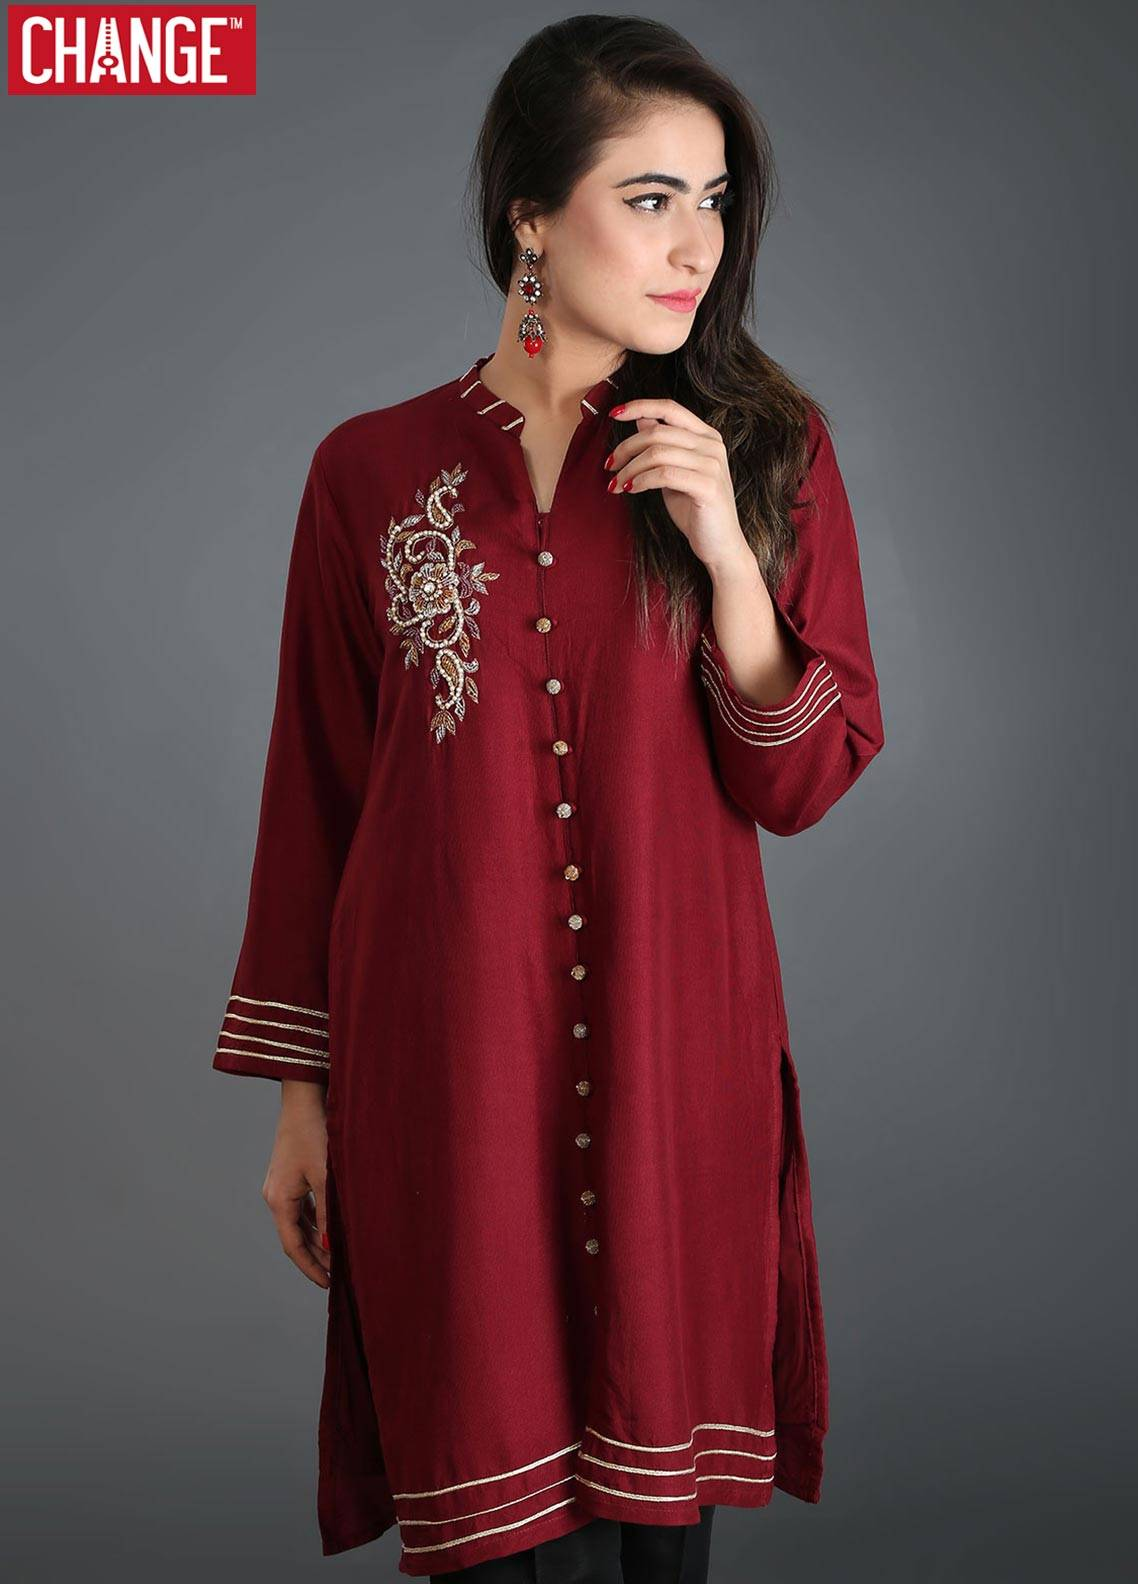 Change Embroidered  Stitched Kurtis CK1875 MAROON